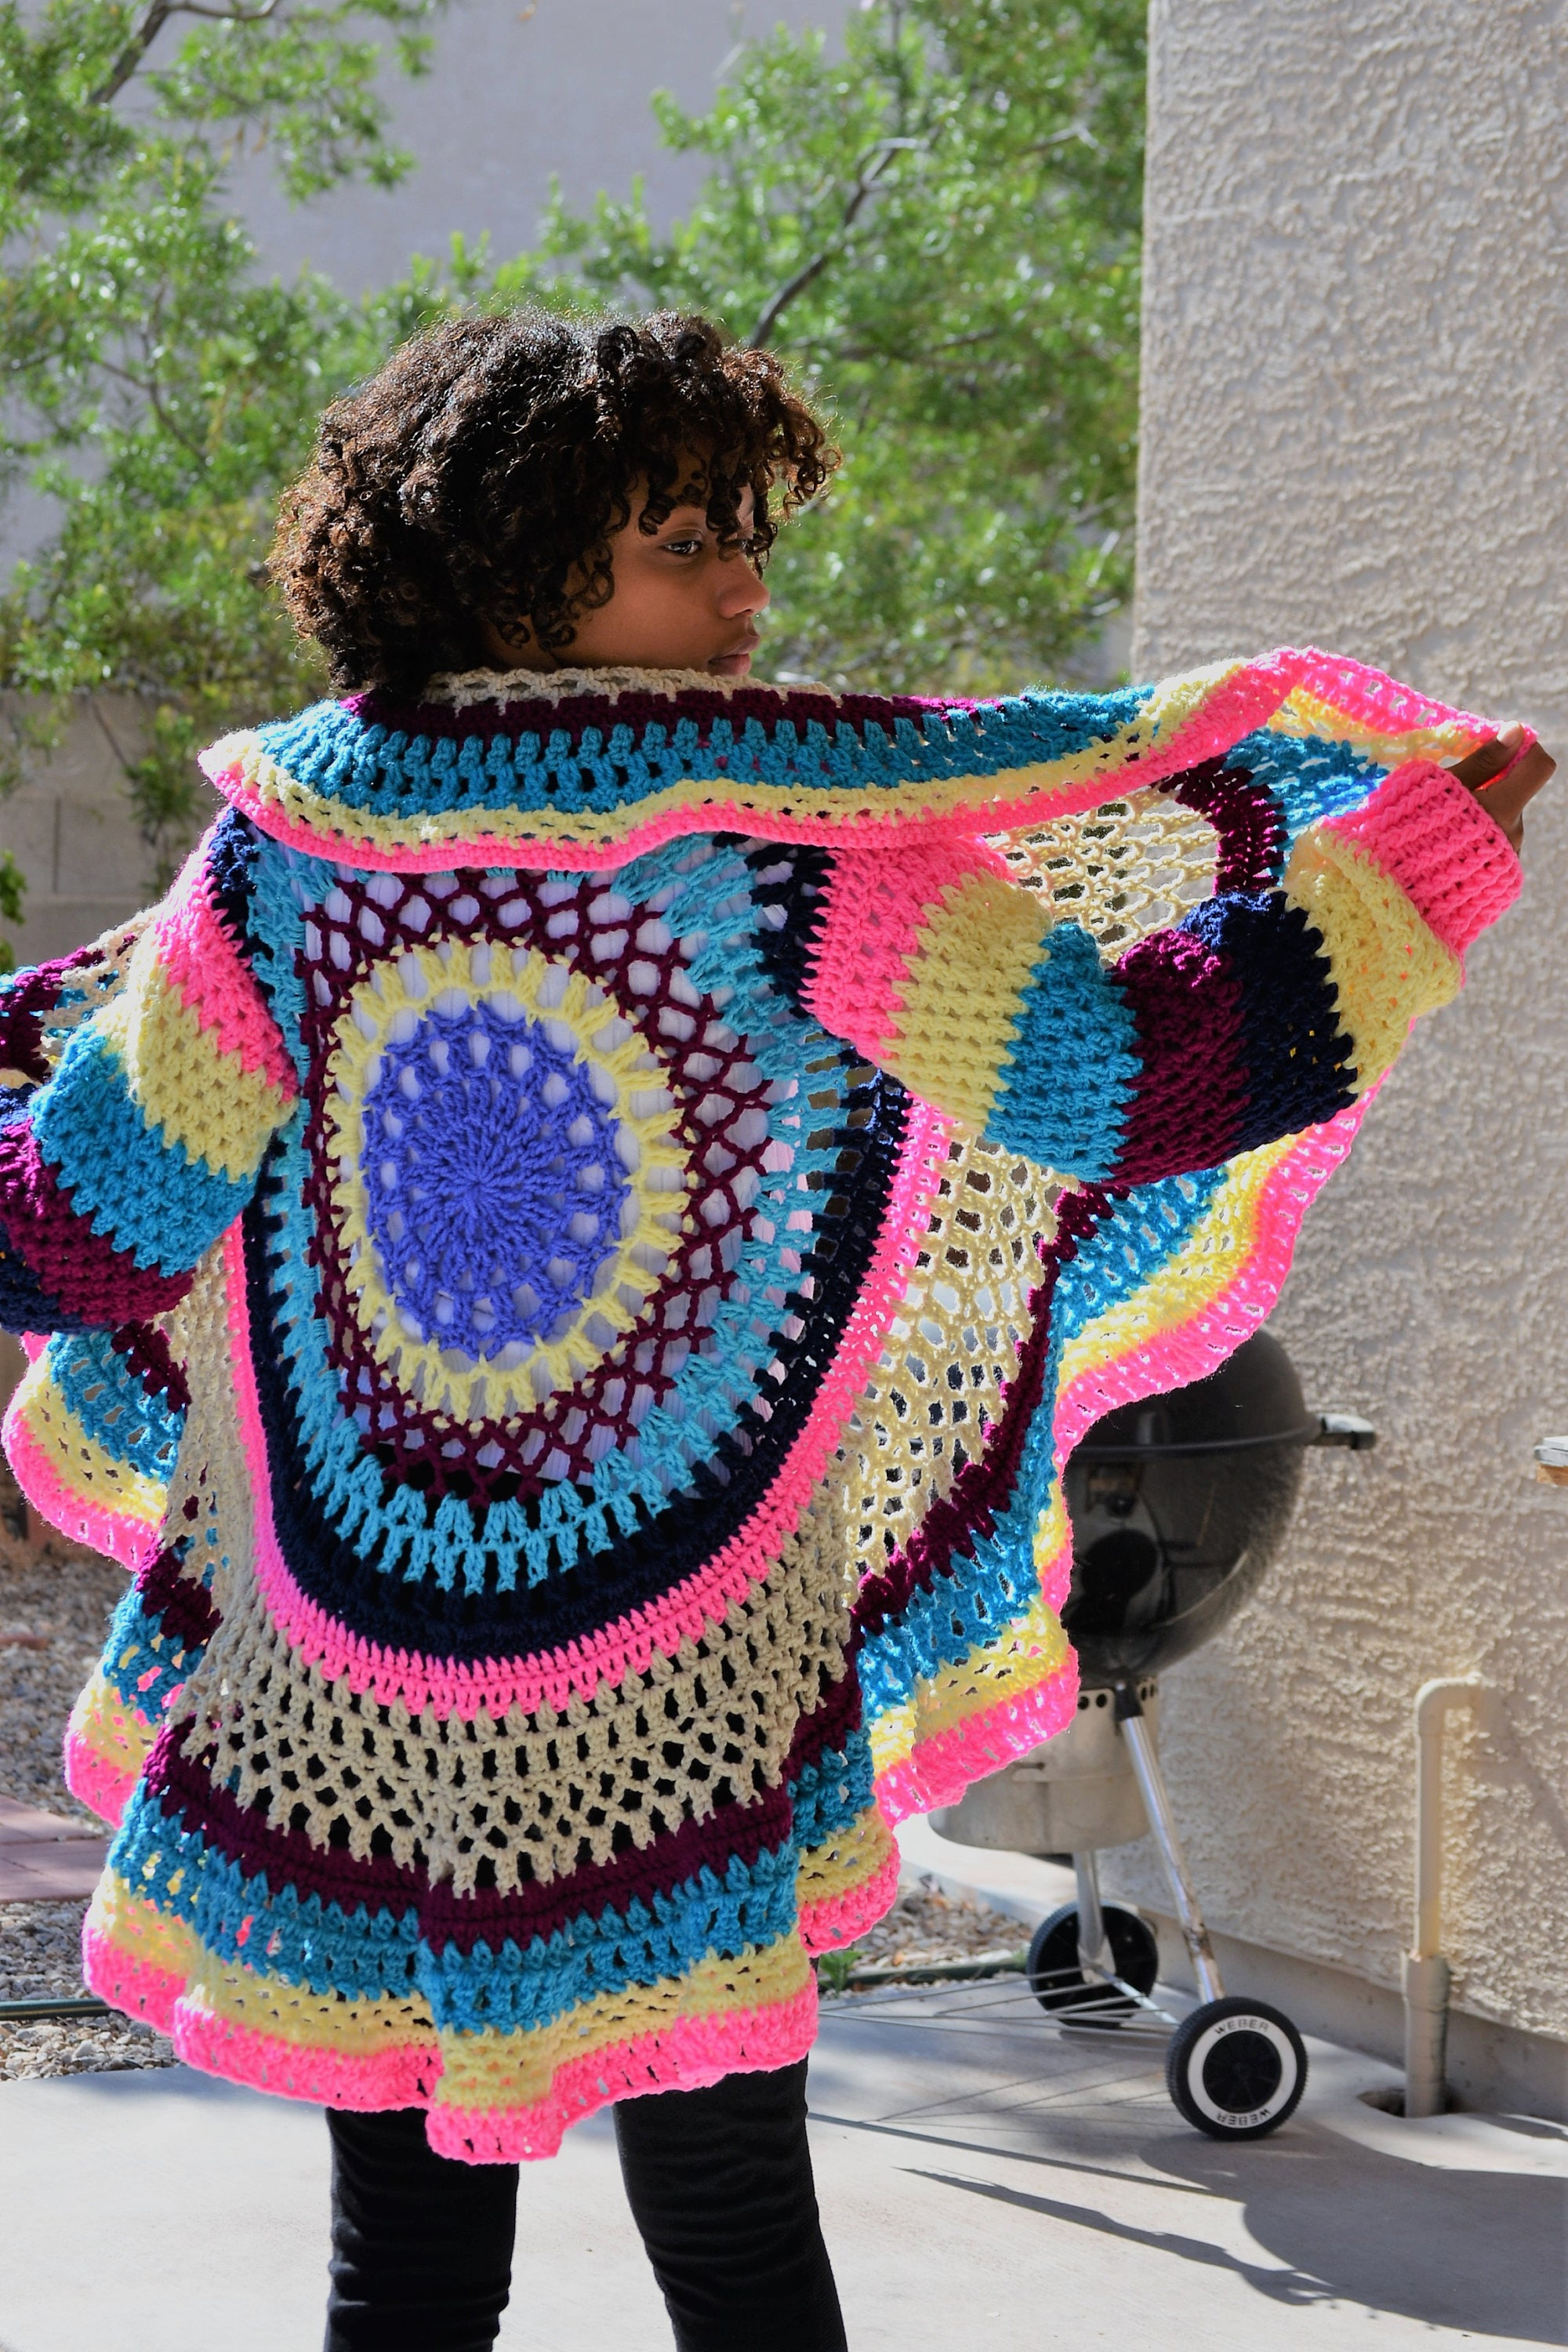 Crochet mandala sweatercircular cardigan crochet sweater description this listing is for the above pictured circular crochet cardigan bankloansurffo Image collections